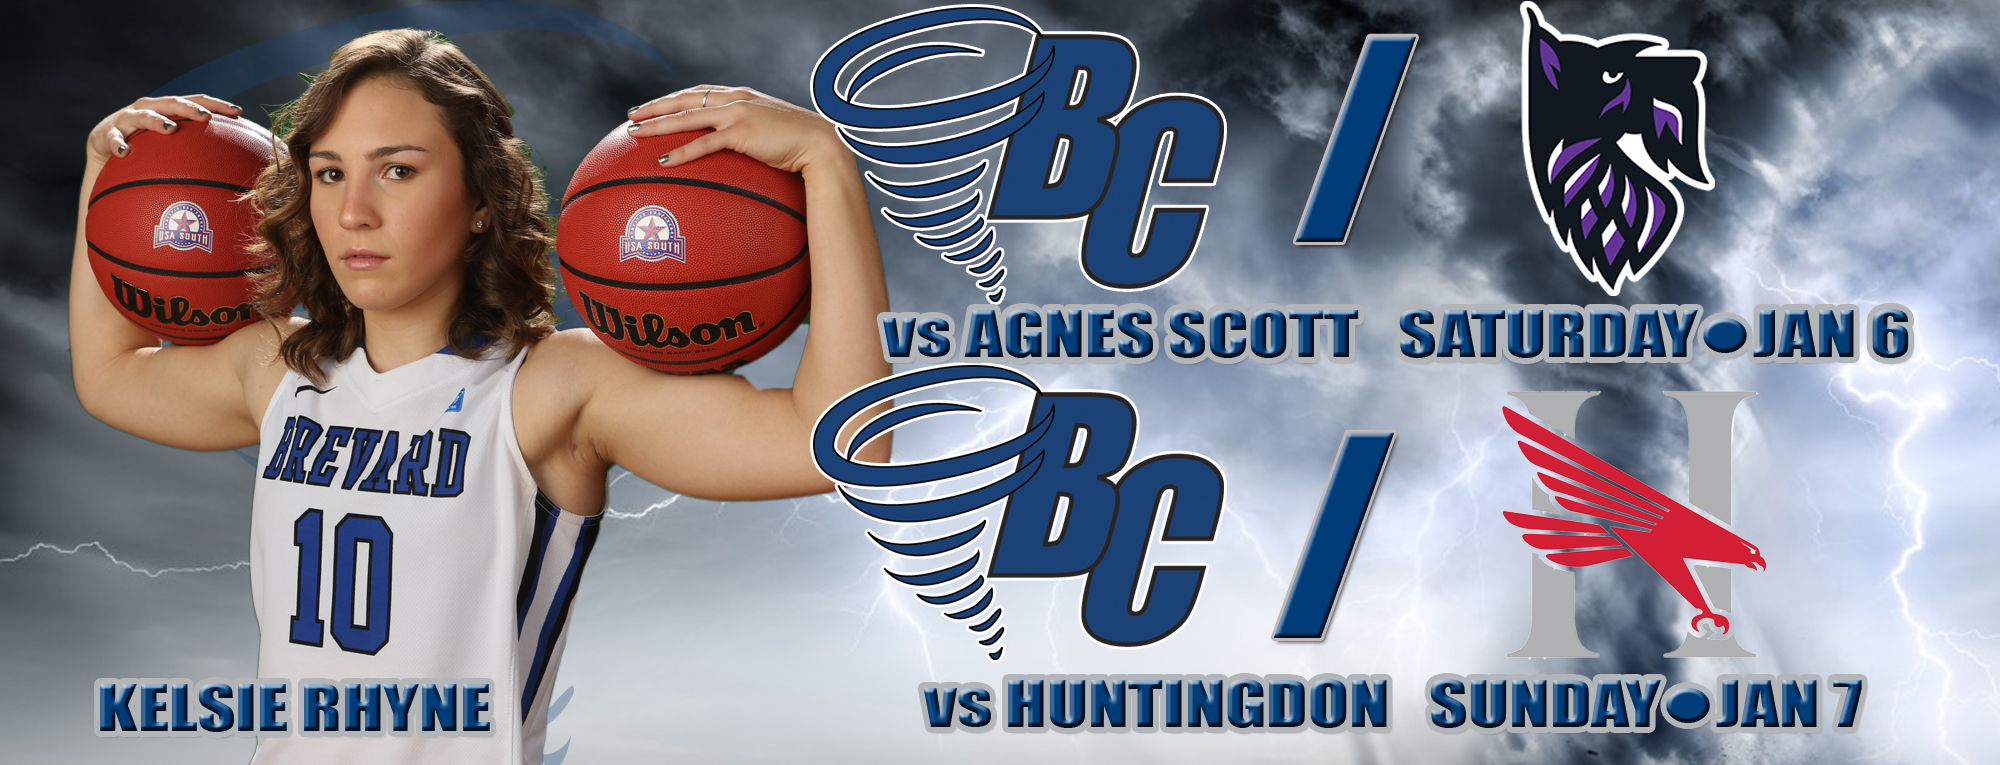 Brevard Hosts Agnes Scott, Huntingdon